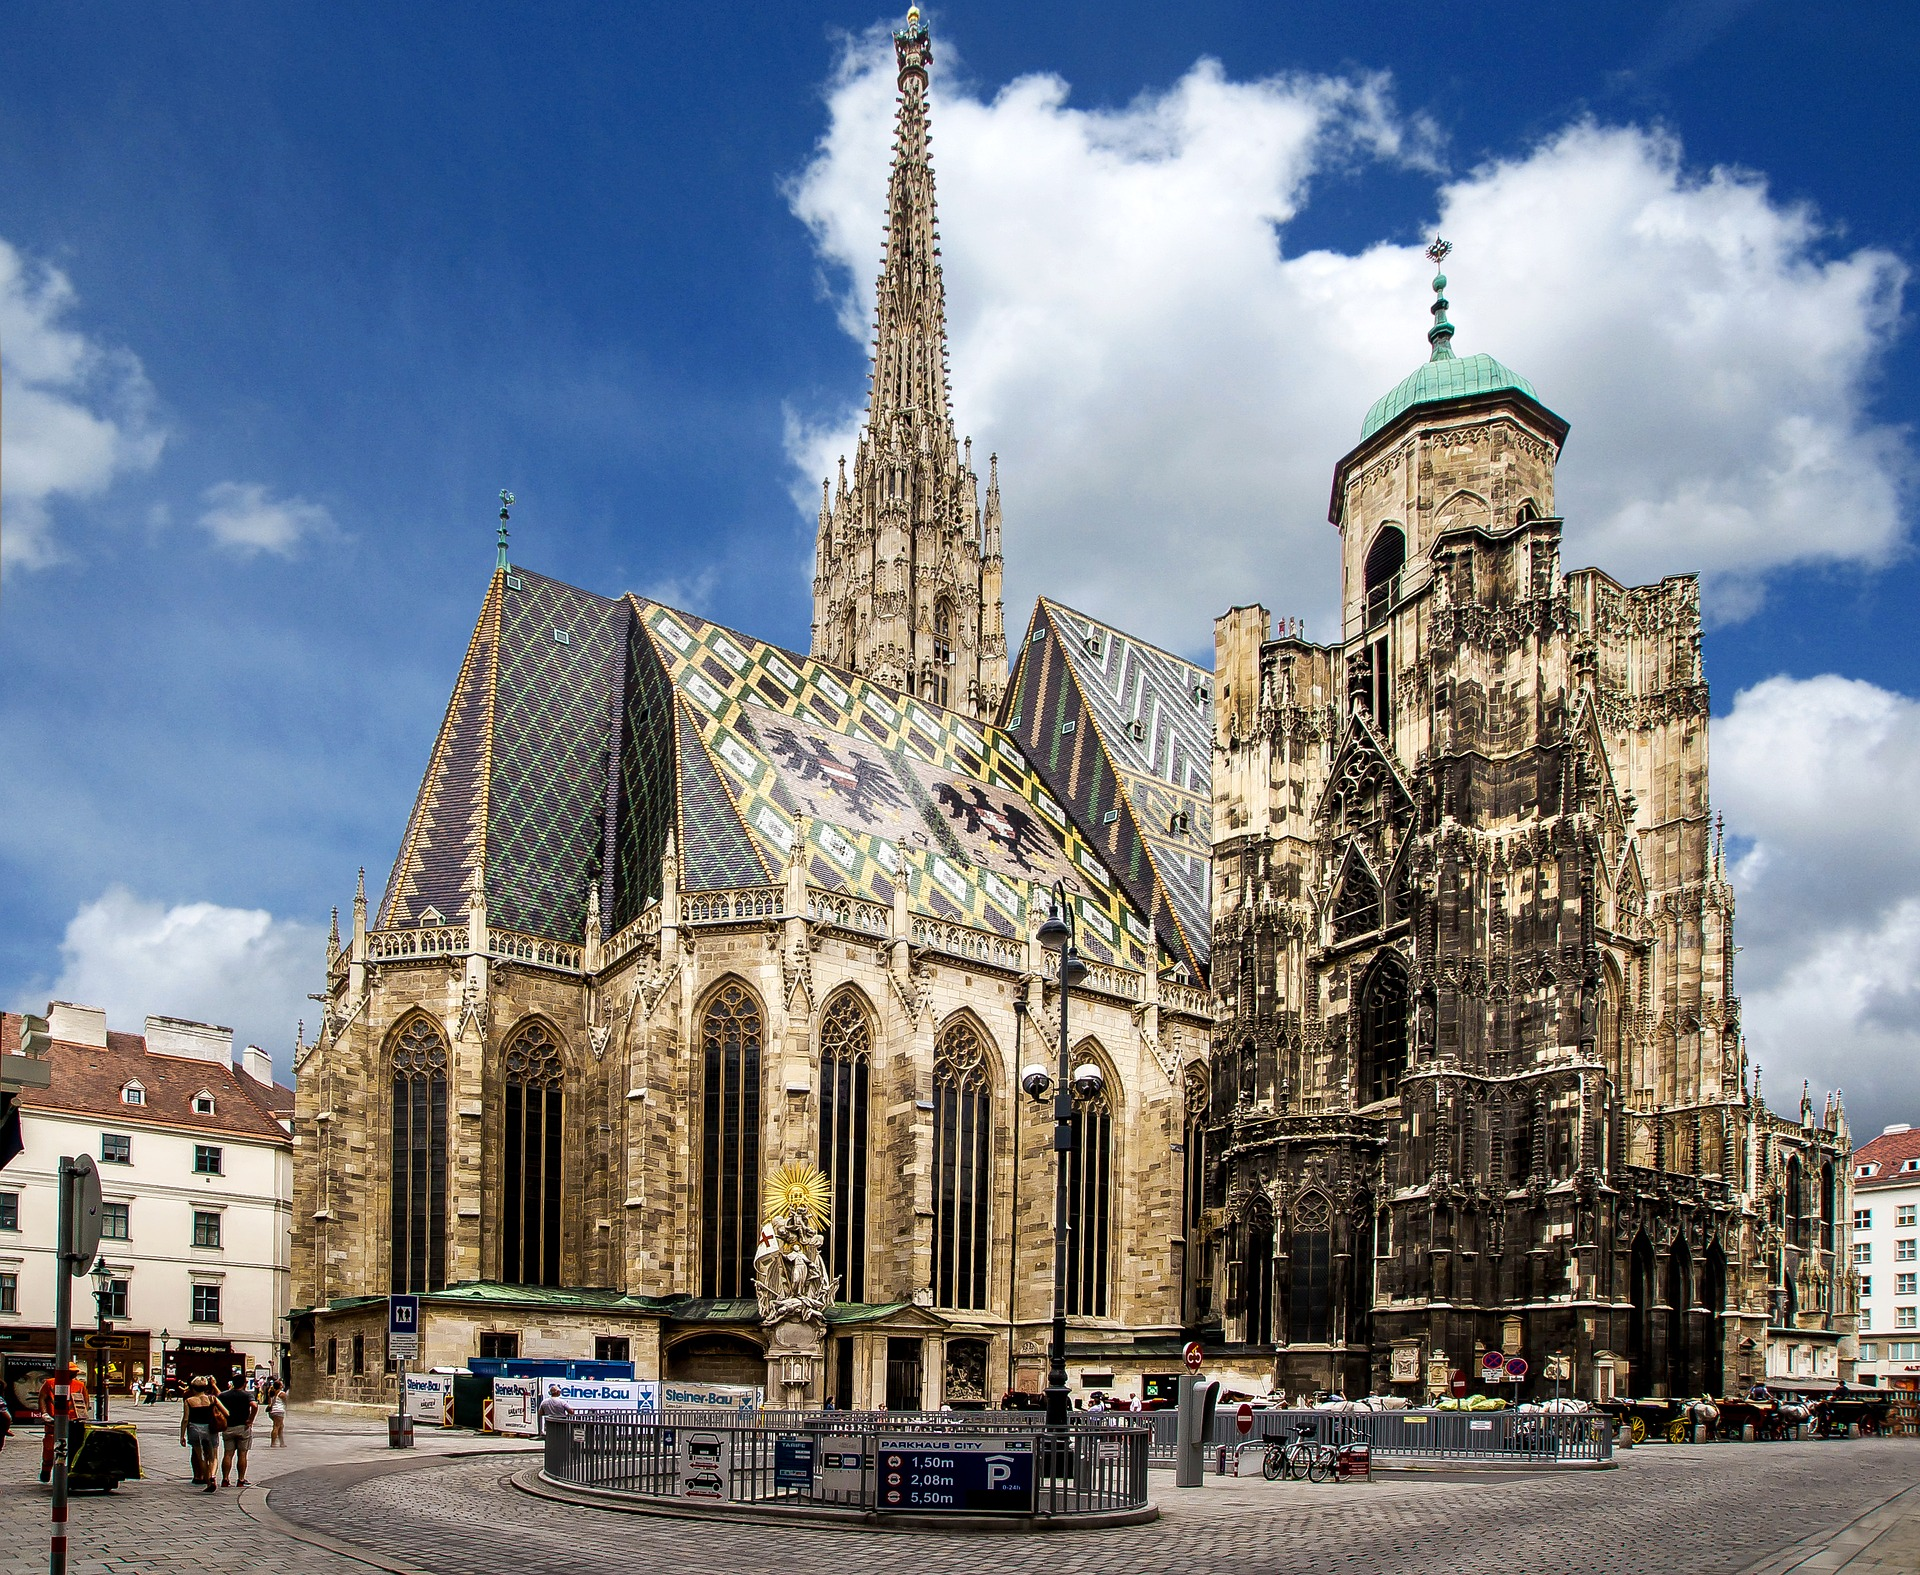 Vienna was the most liveable city for the second year running. Photo courtesy: Pixabay